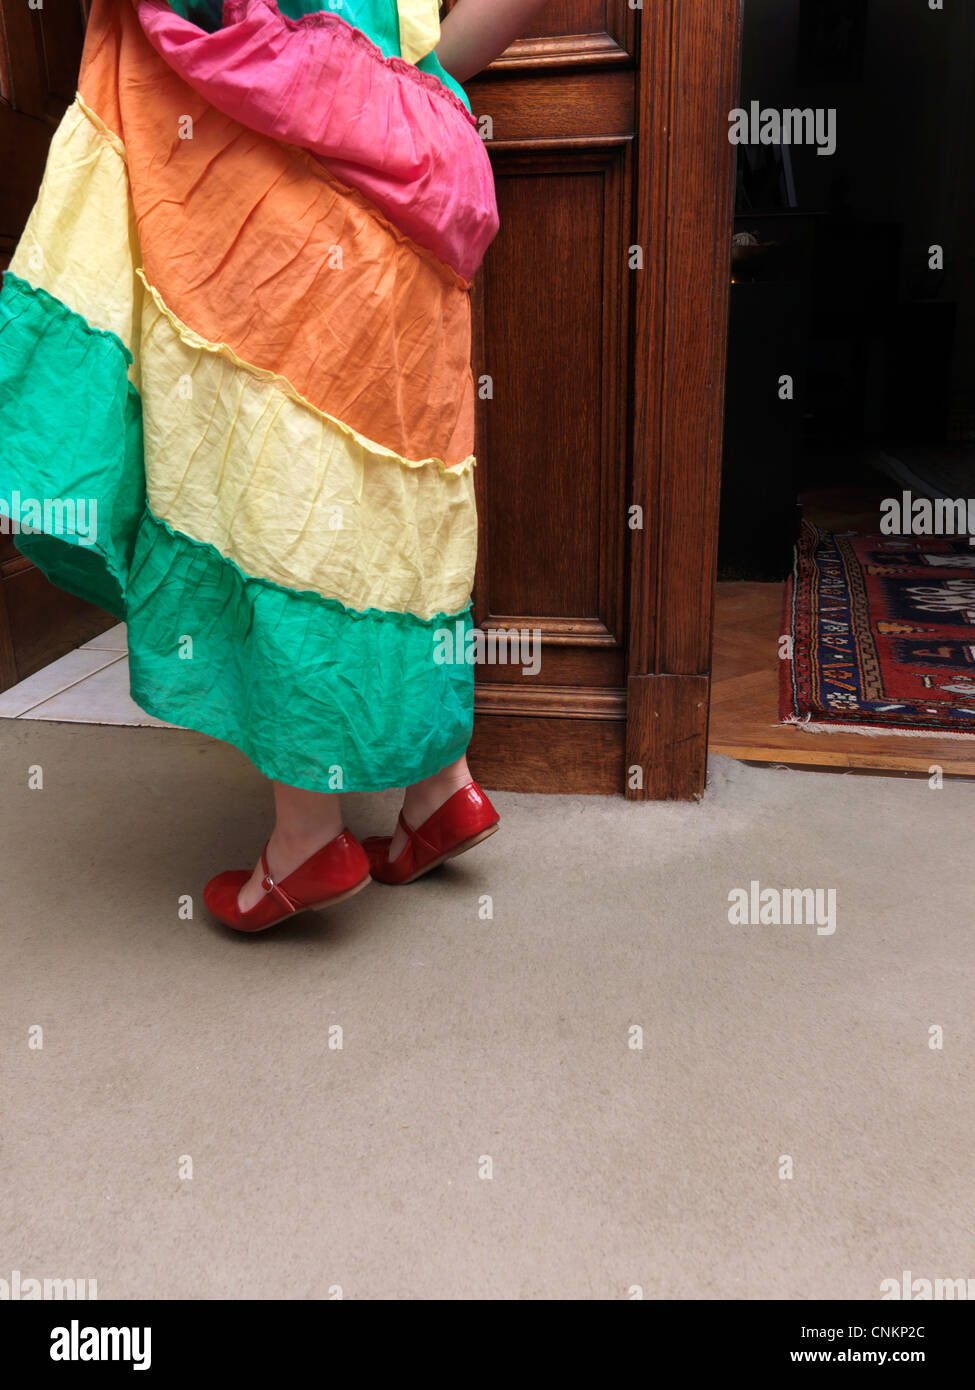 Young Girl Tip Toeing In Red Shoes Through Doorway England - Stock Image